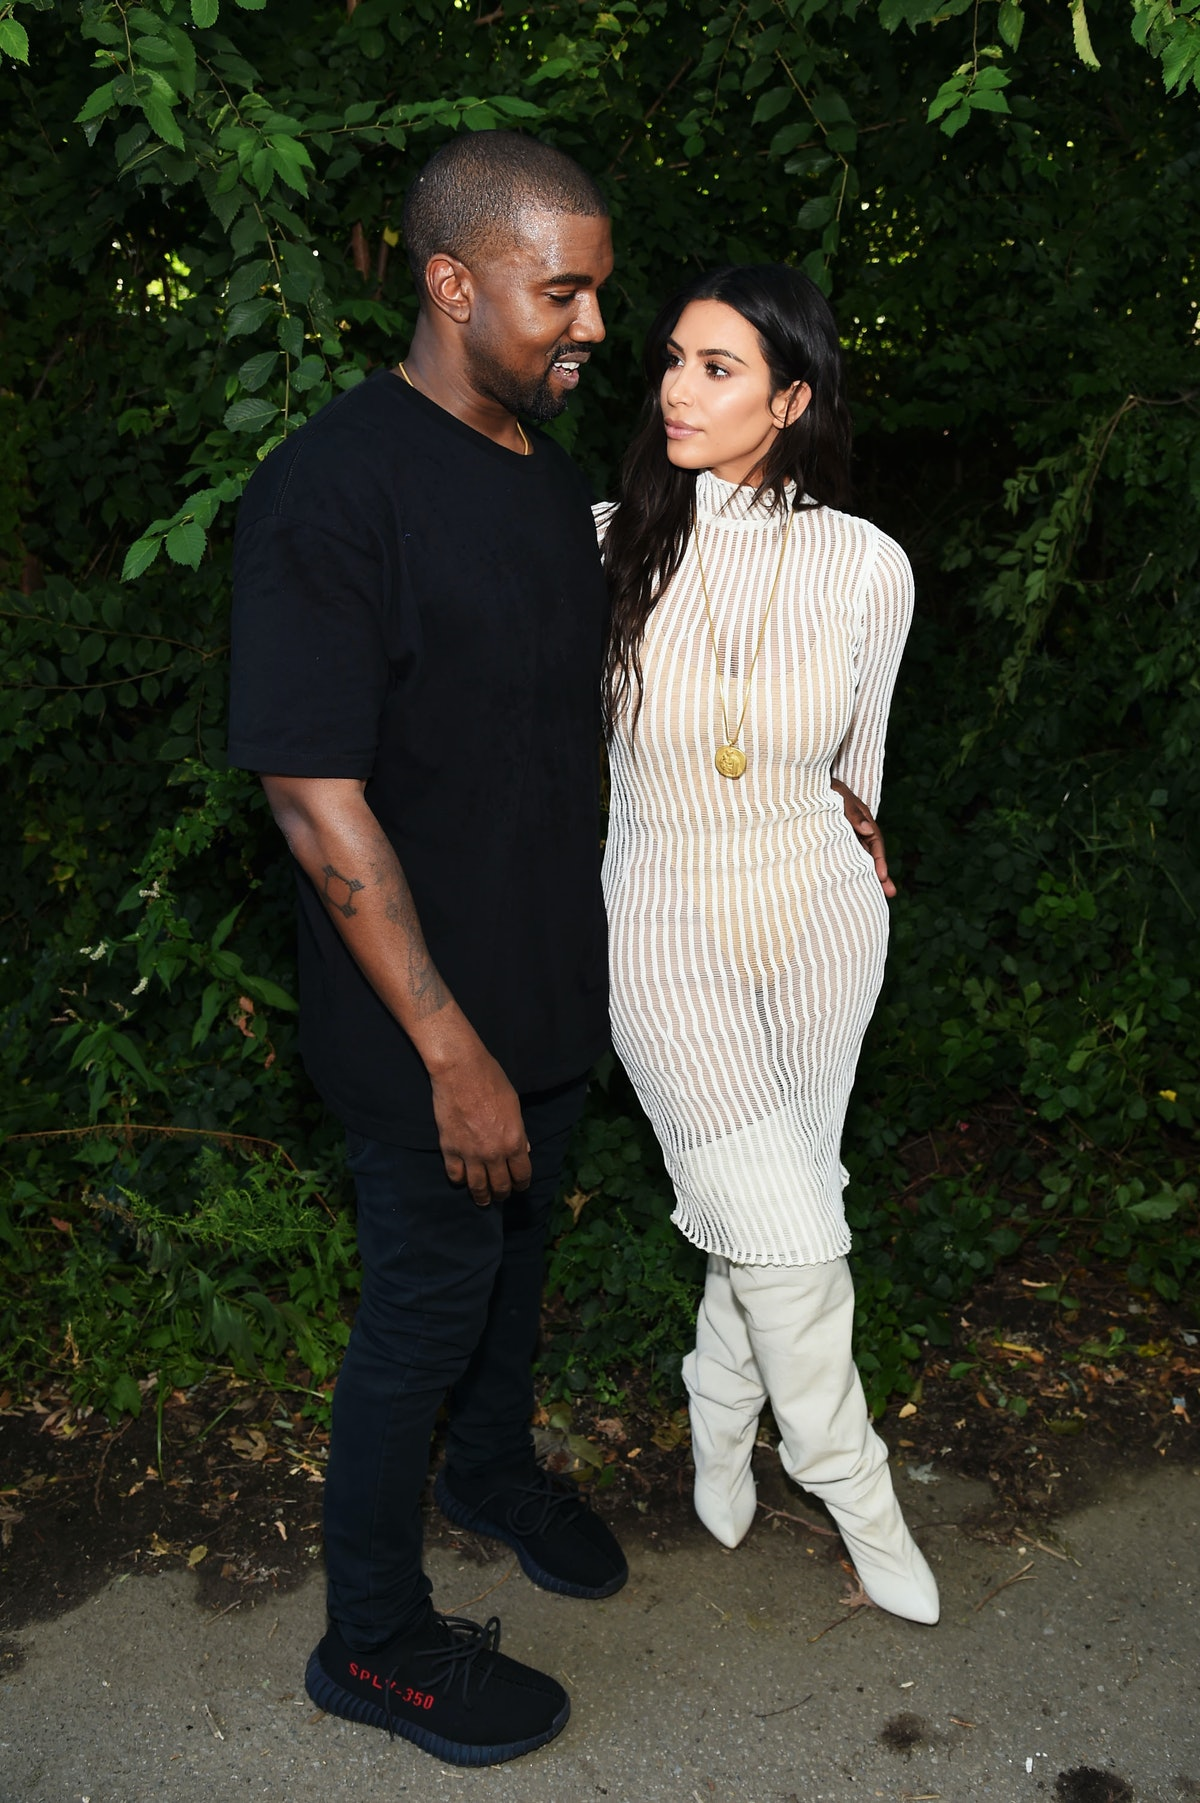 Kim Kardashian & Kanye West Switched Hair Colors — And Yes, Kanye Now Has Pink Hair